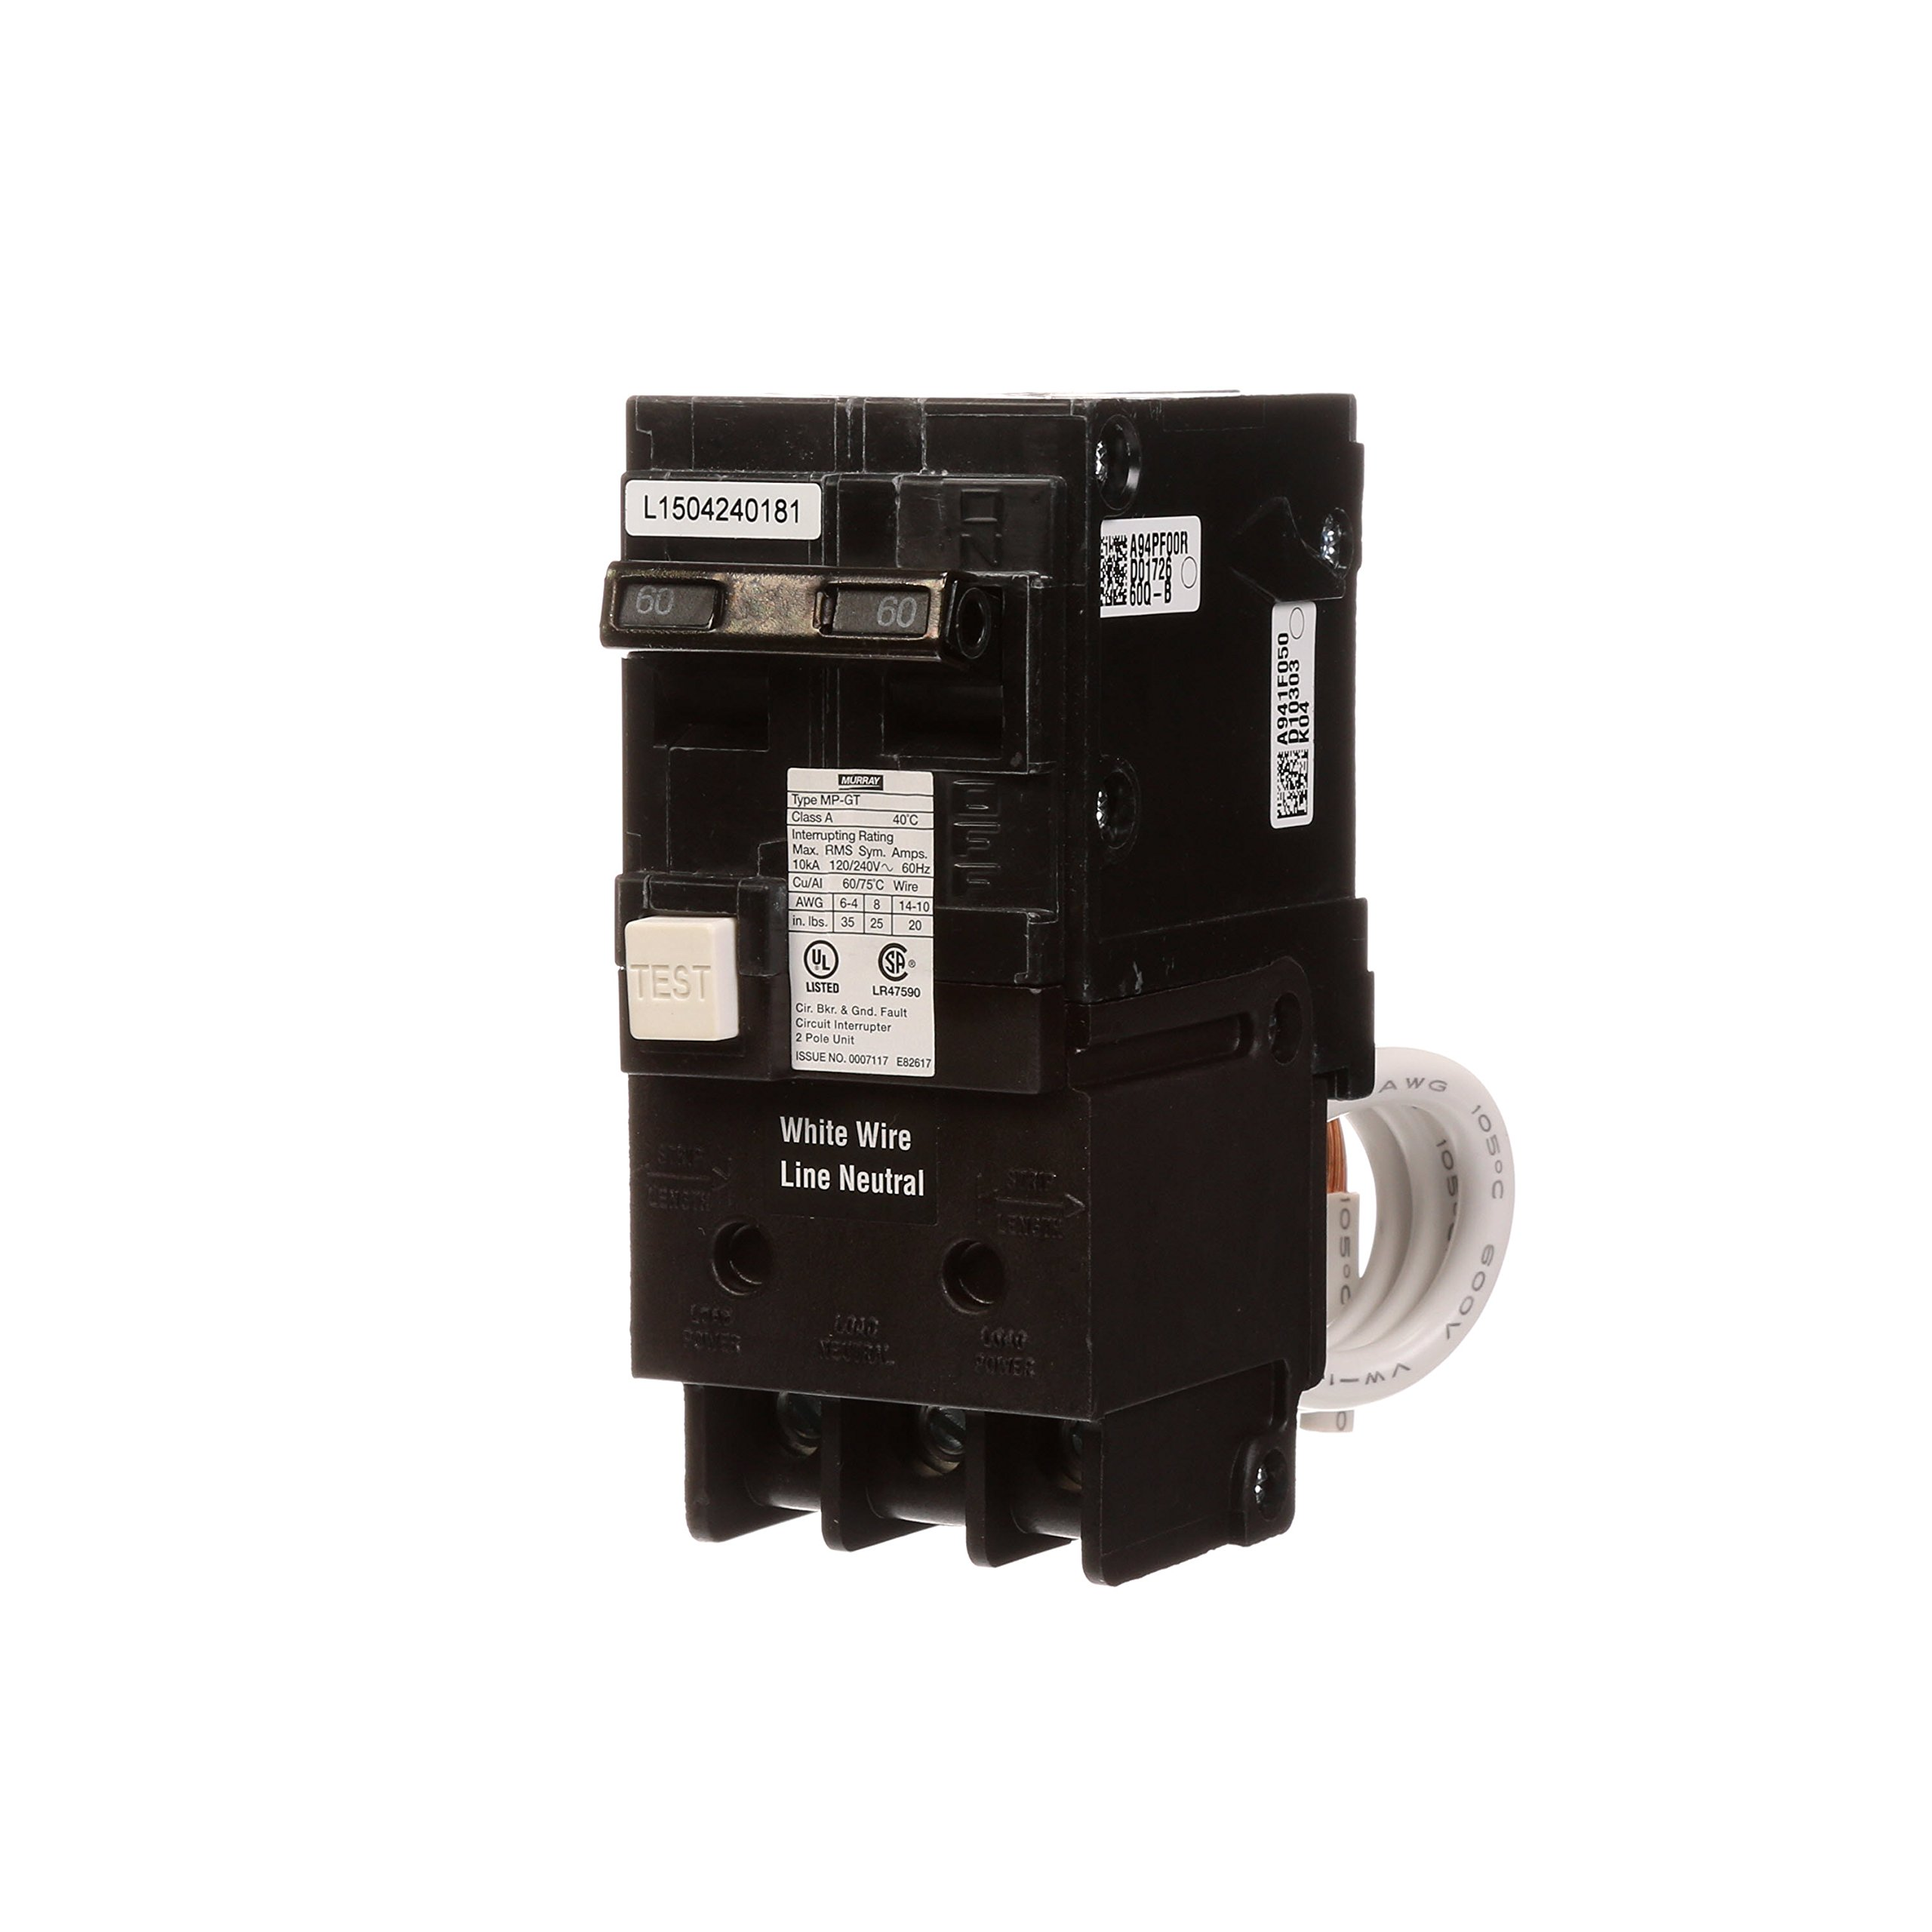 Murray MP260GFA 60 Amp 2-Pole Gfci Circuit Breaker with Self Test & Lockout Feature